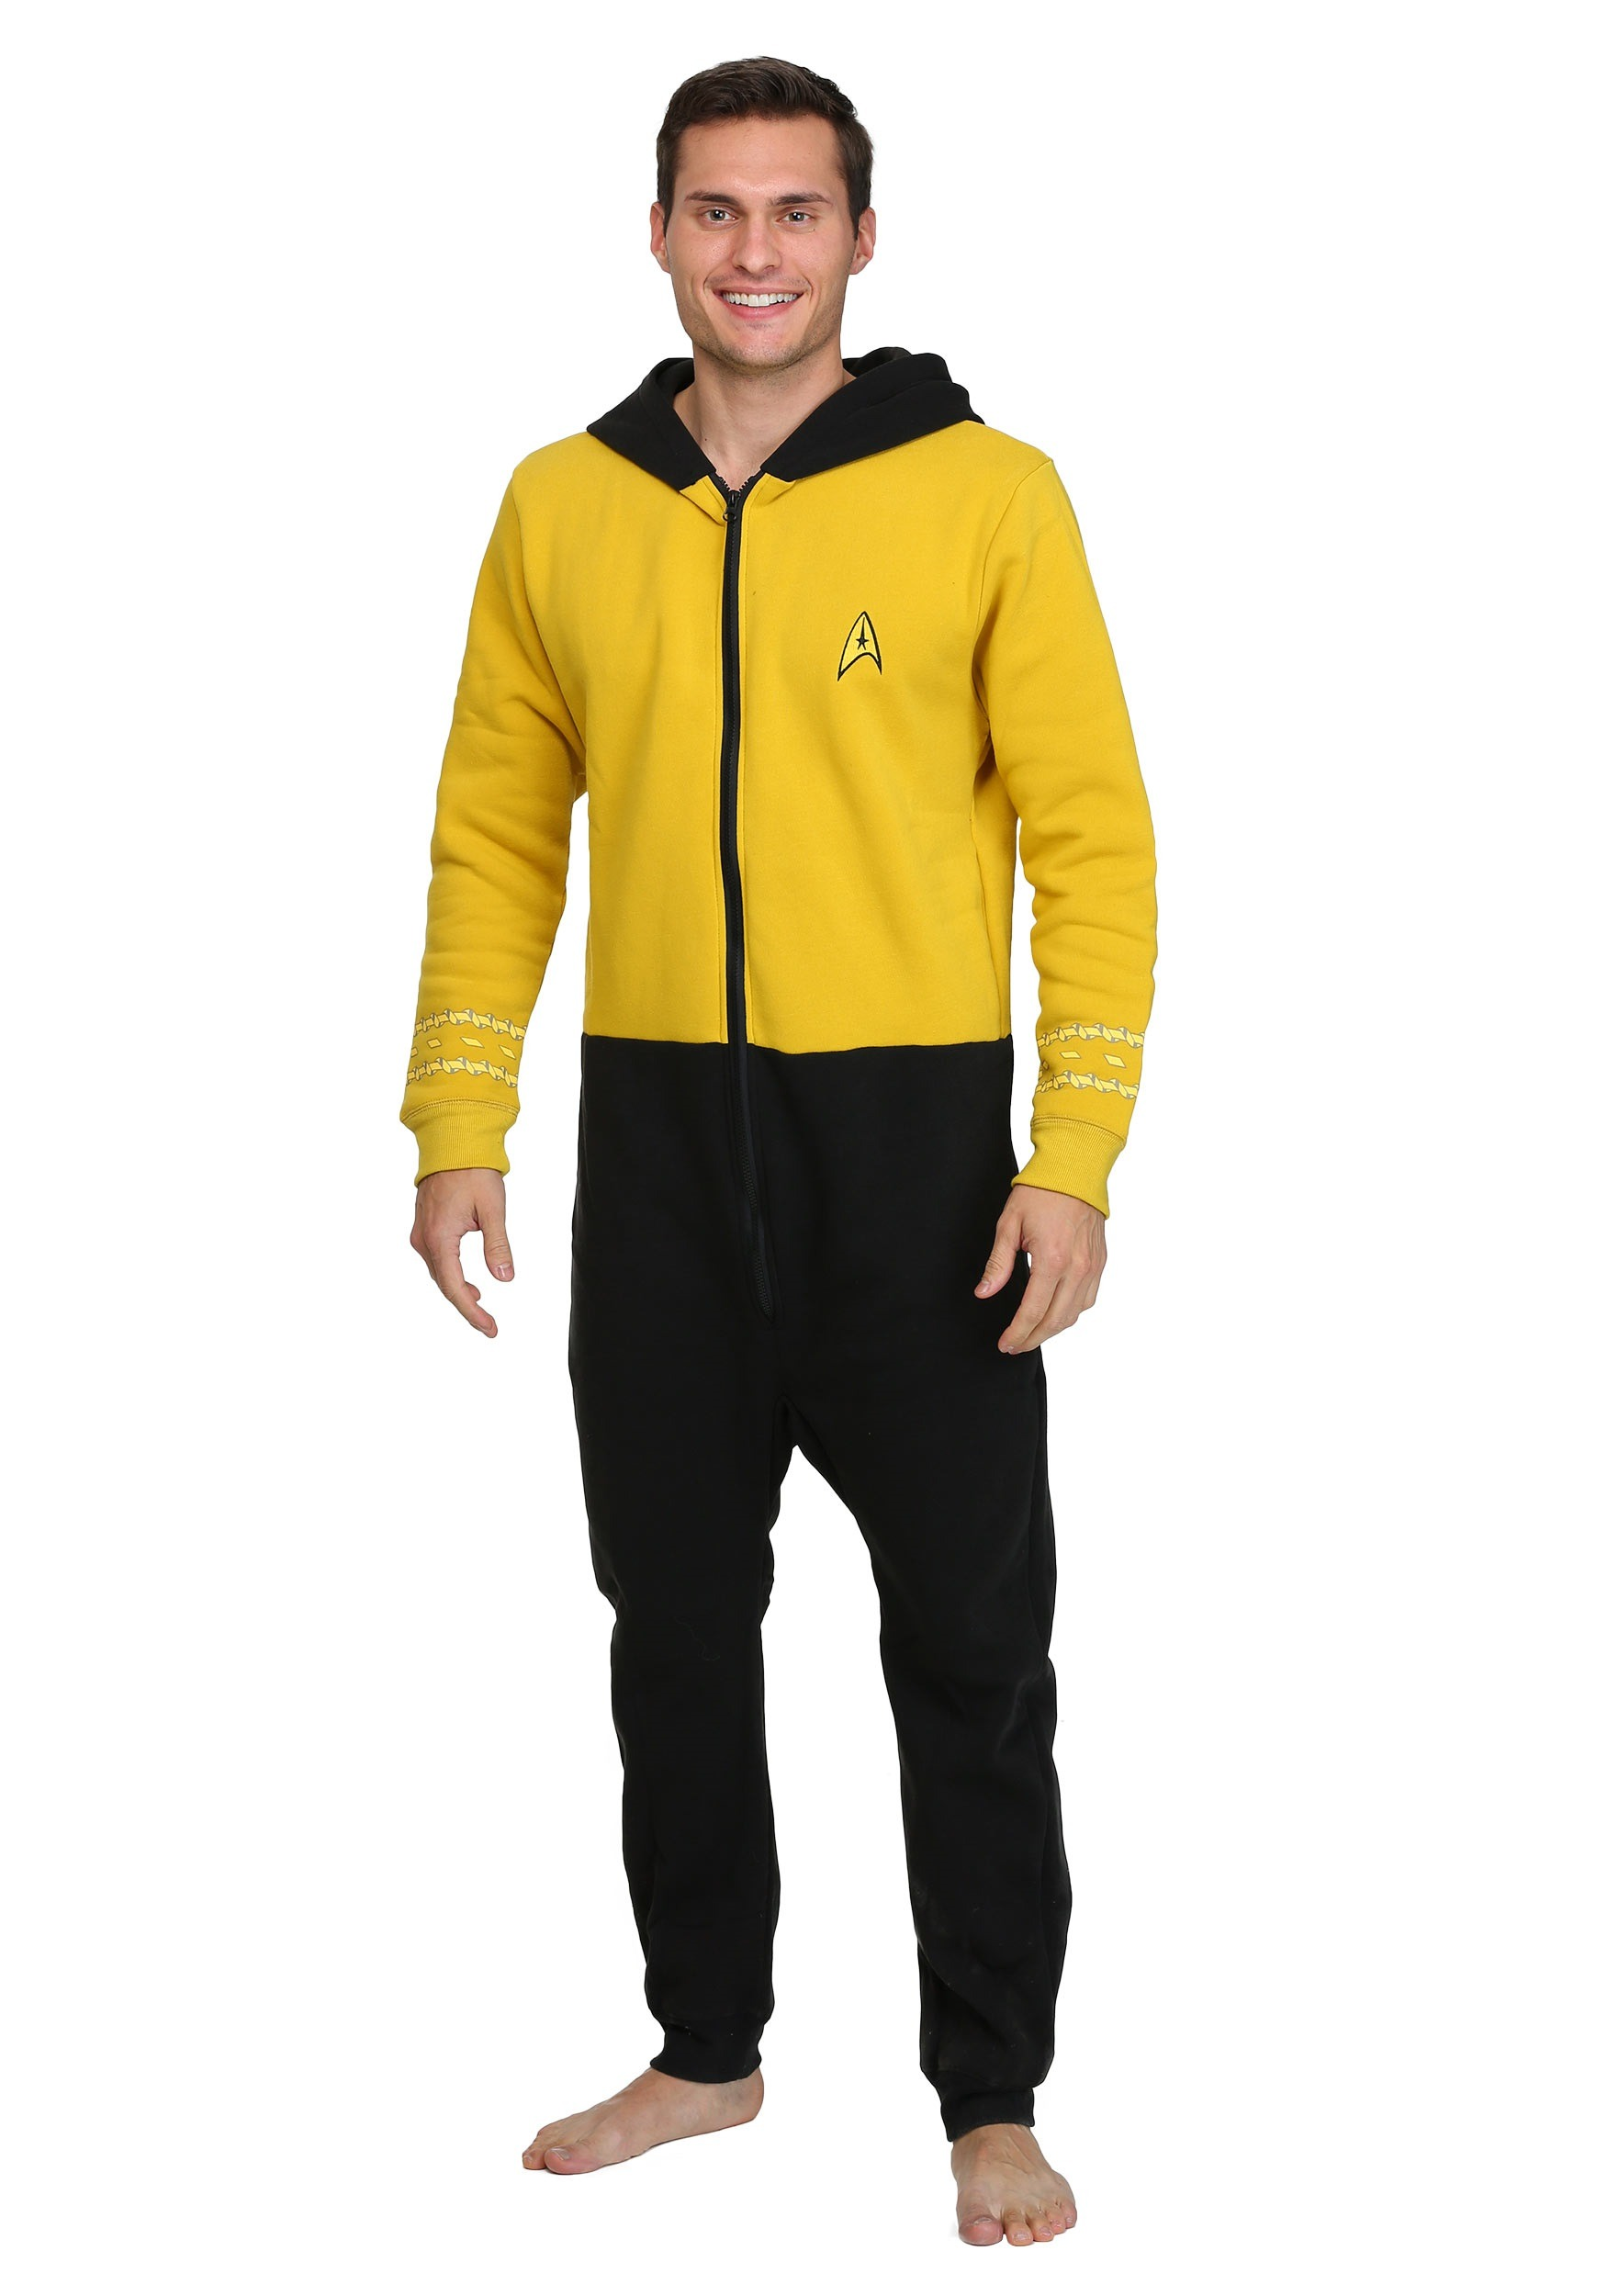 740a31ca64 star-trek-captain-kirk-pajamas.jpg